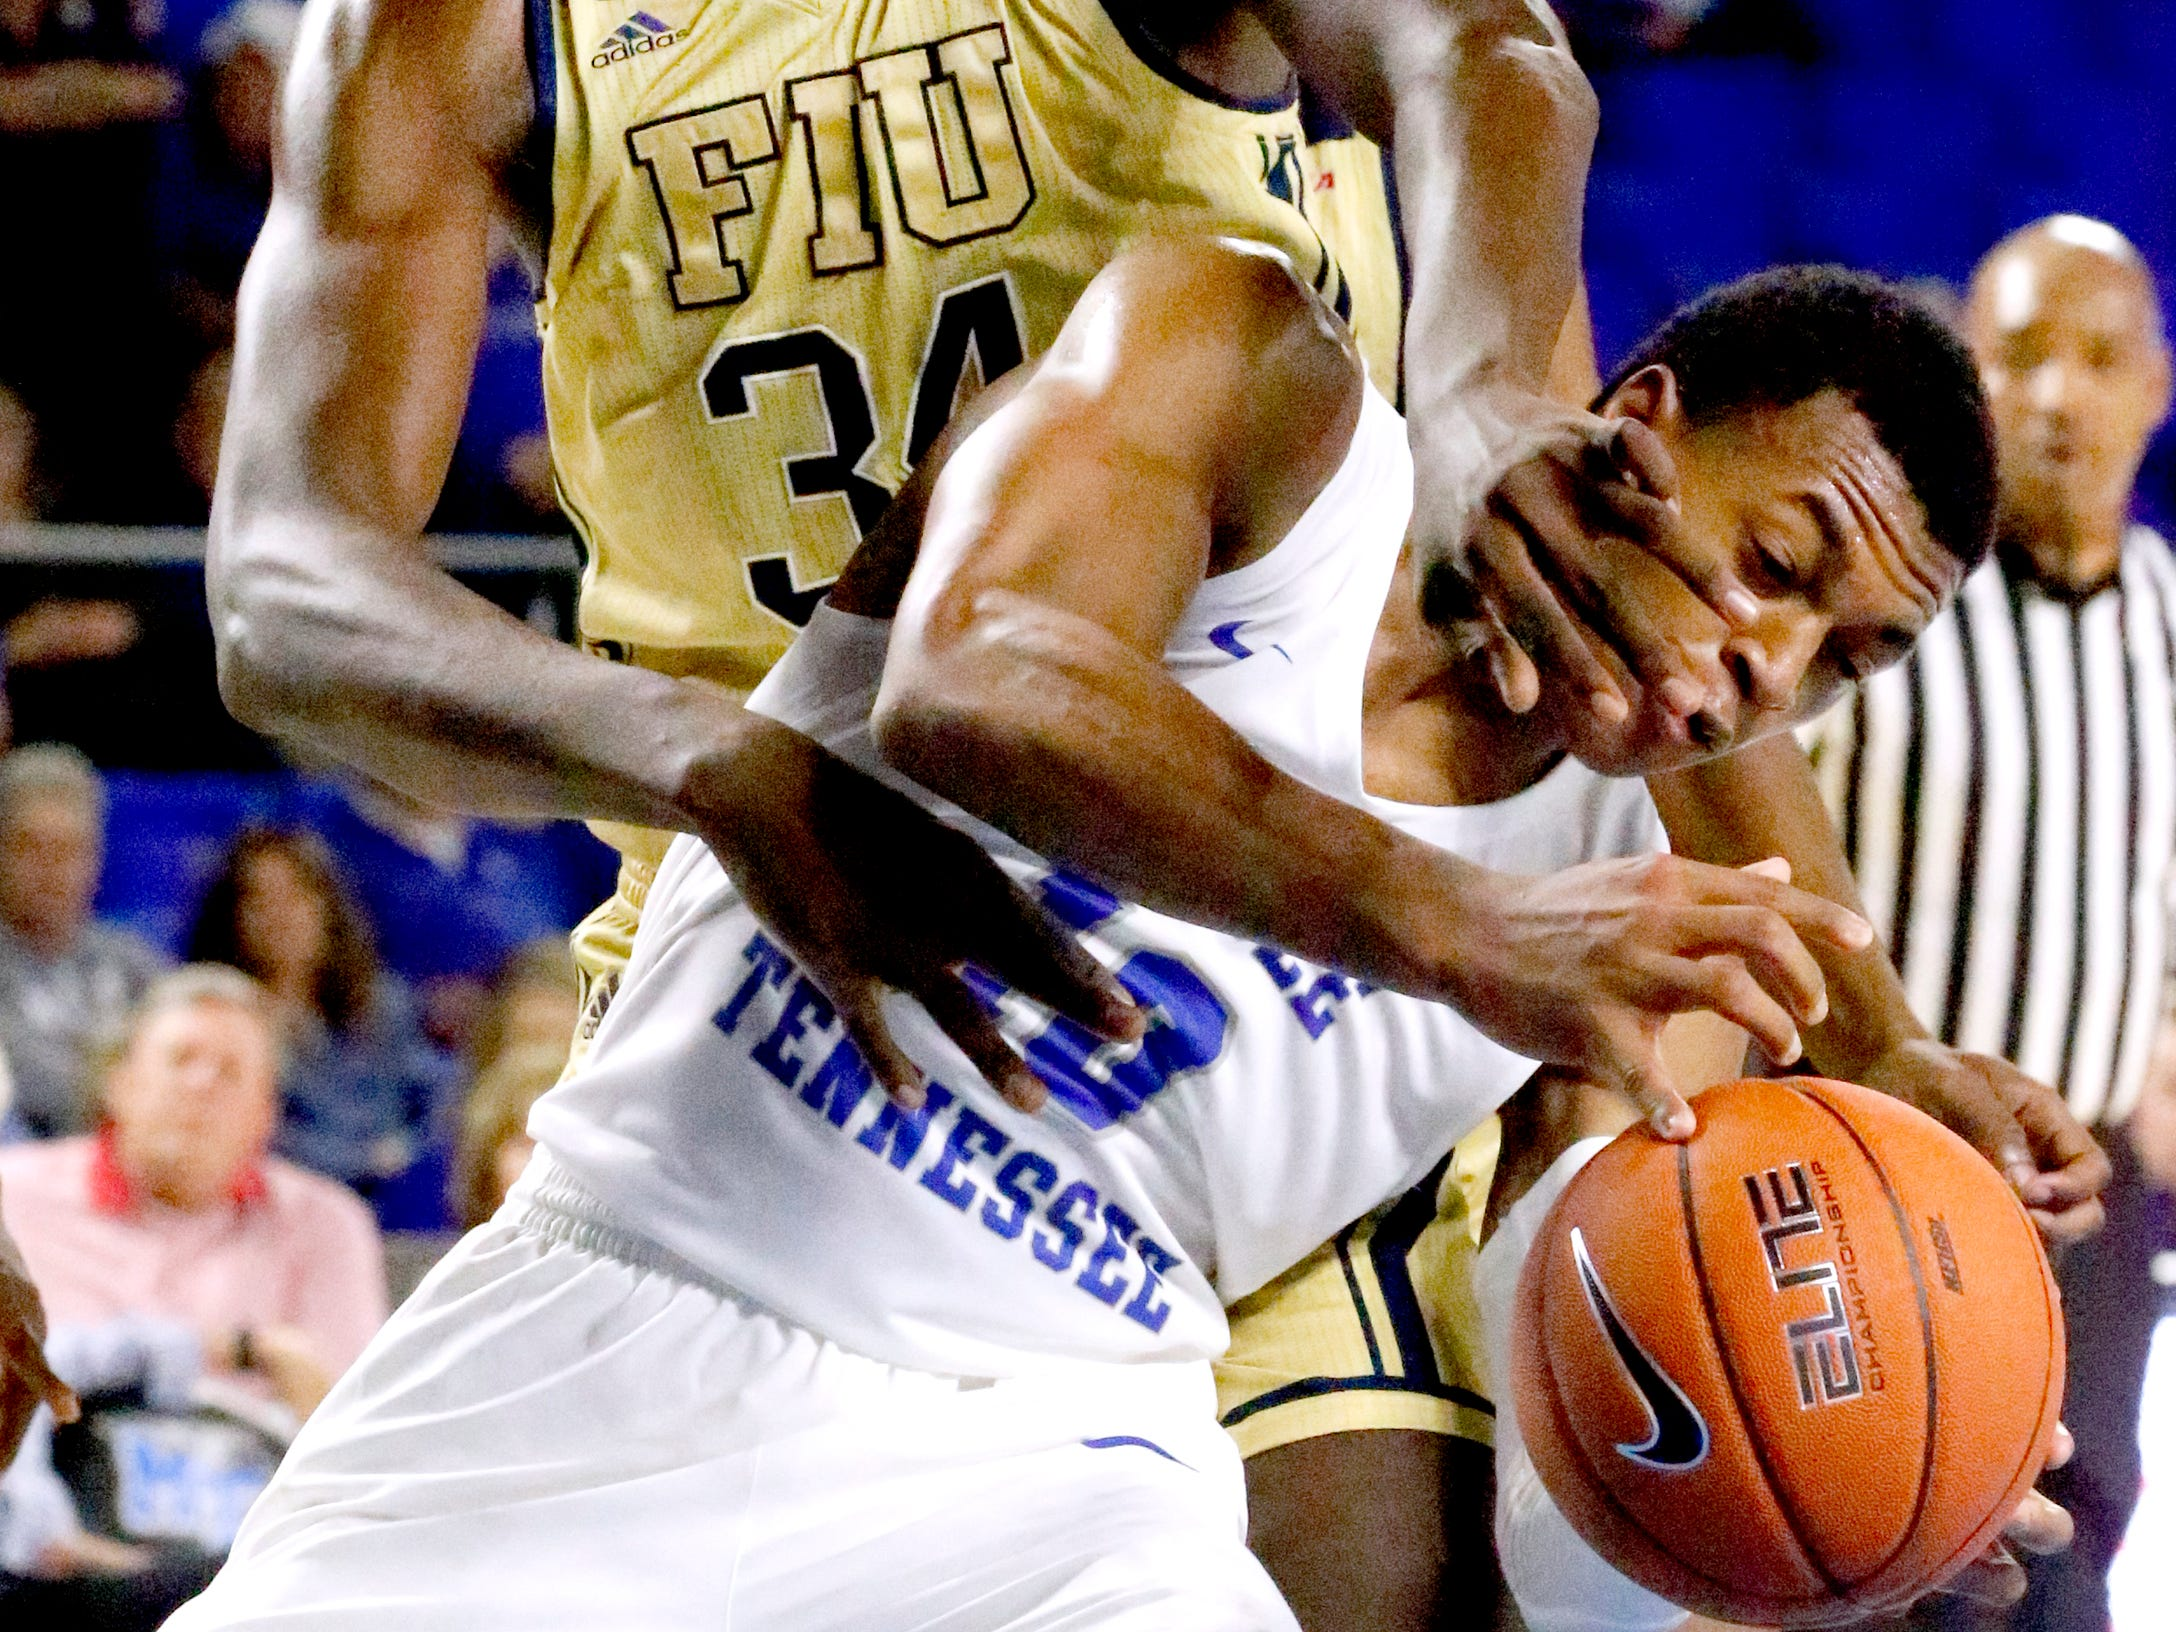 MTSU's guard Jayce Johnson (10) goes up for a shot as he is fouled y FIU's forward Osasumwen Osaghae (34) on Thursday Jan. 3, 2019, at MTSU.